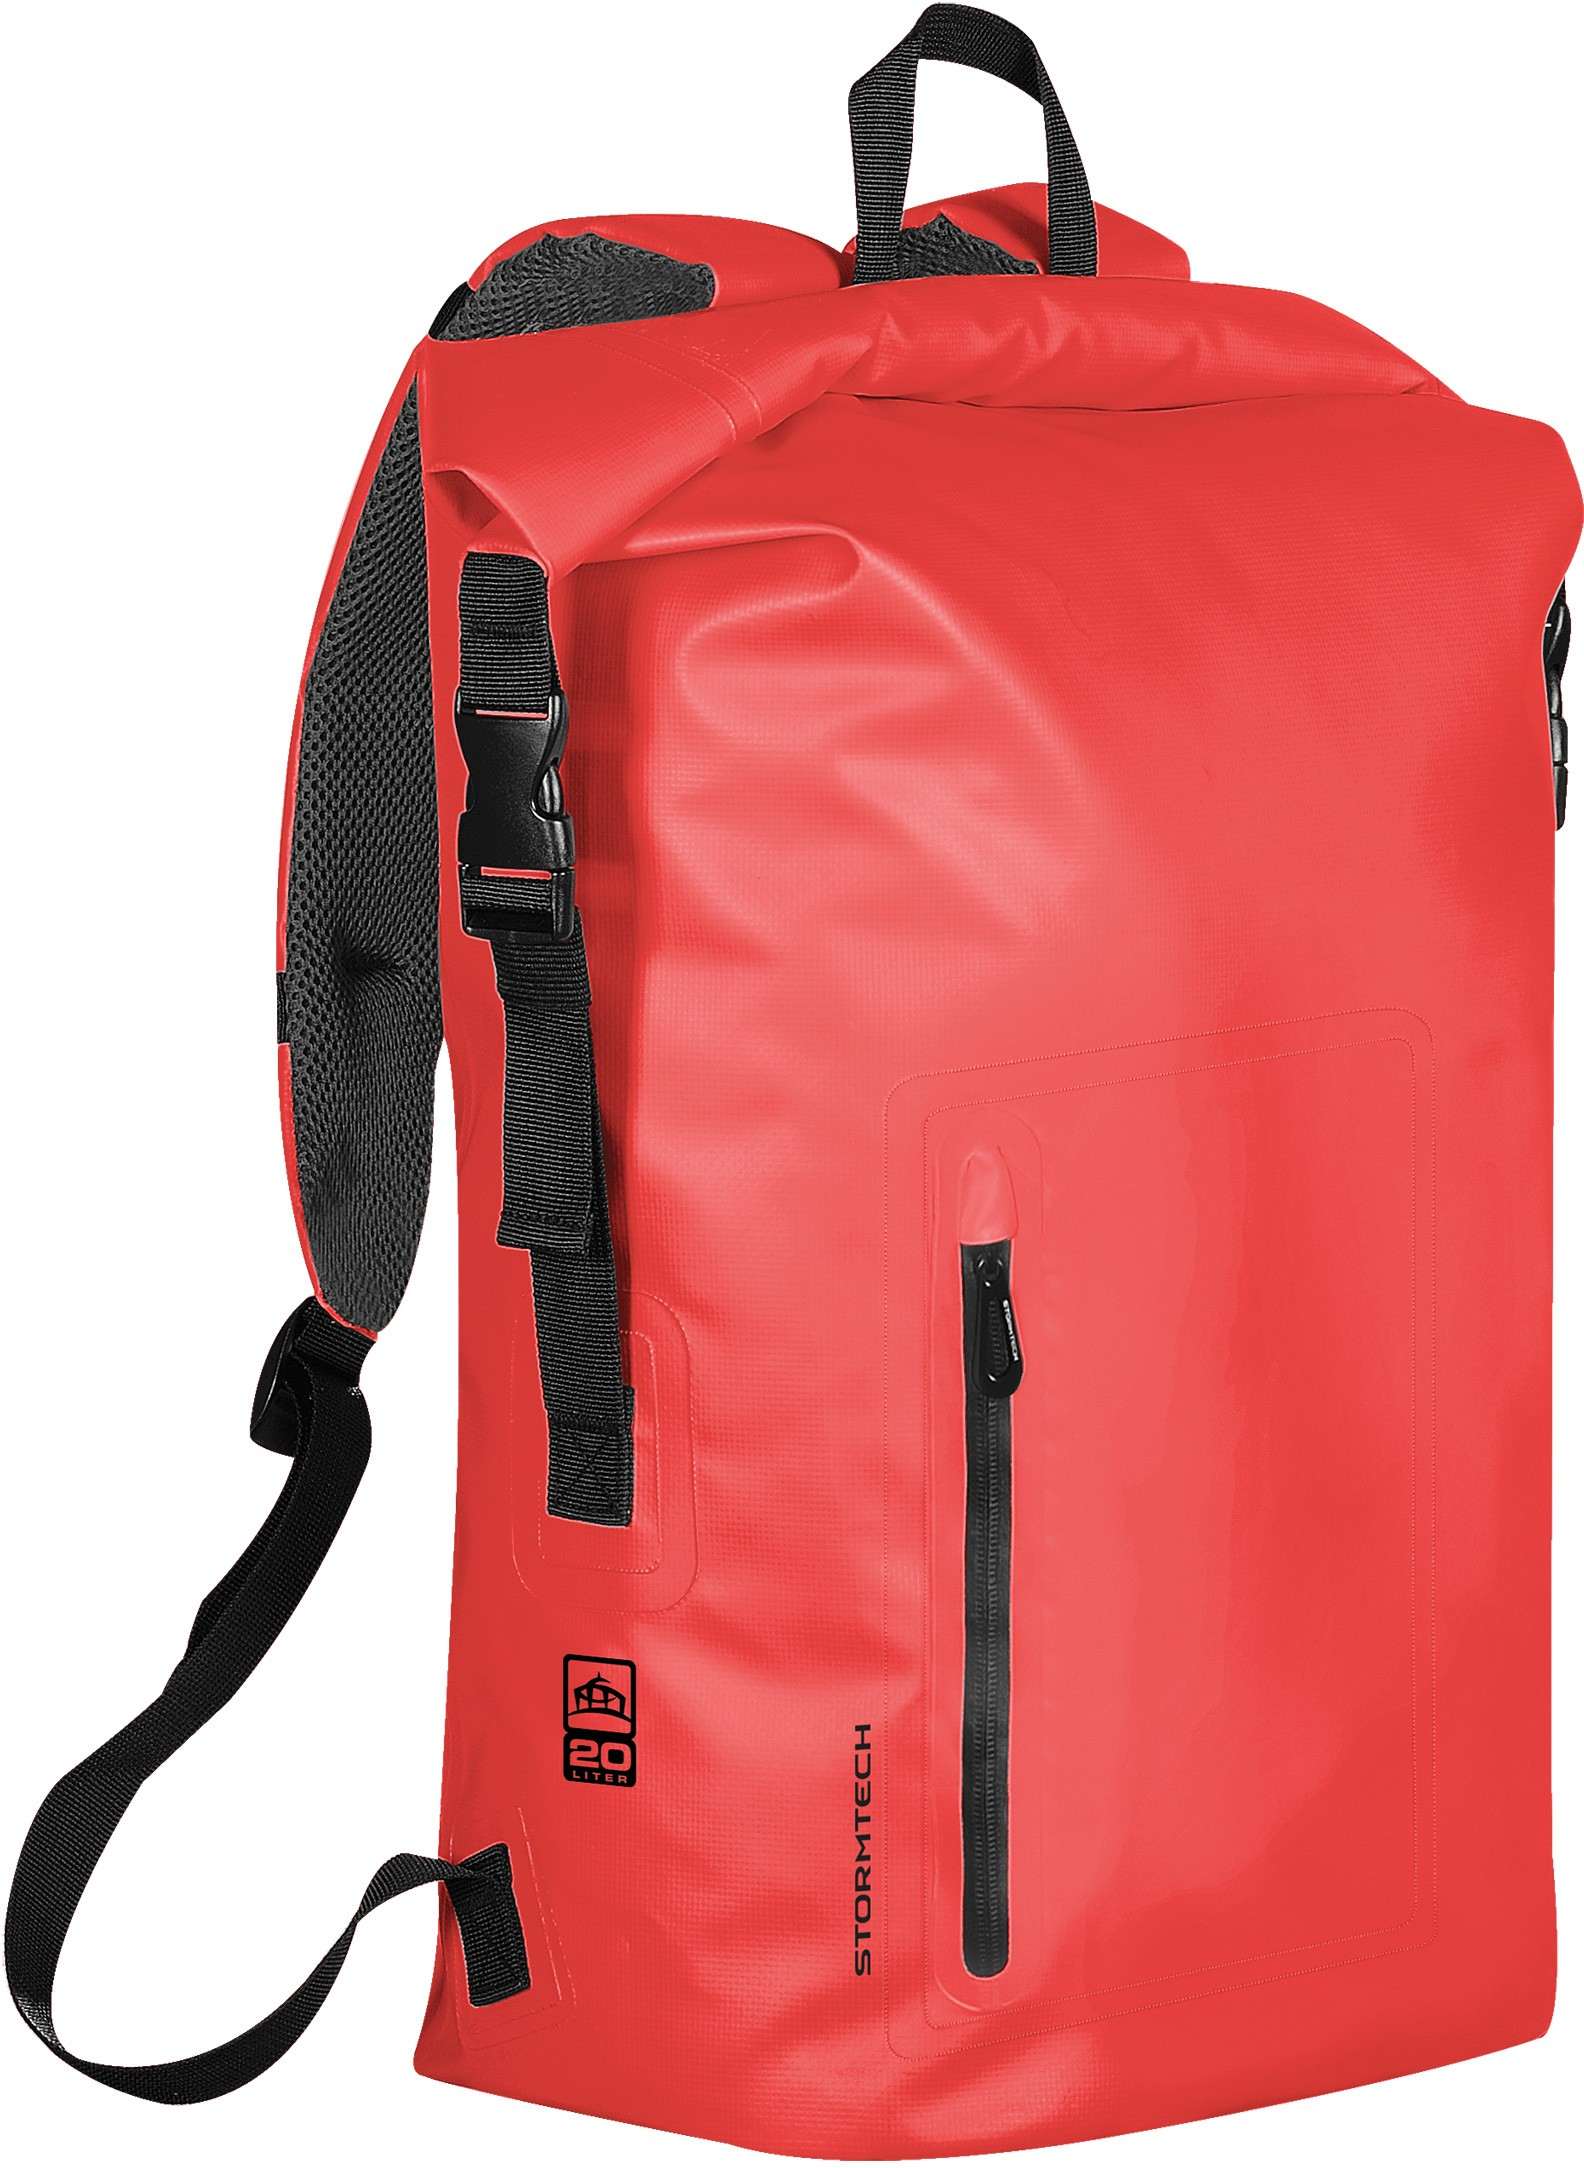 Lightweight Waterproof Backpack Nv6akmXw